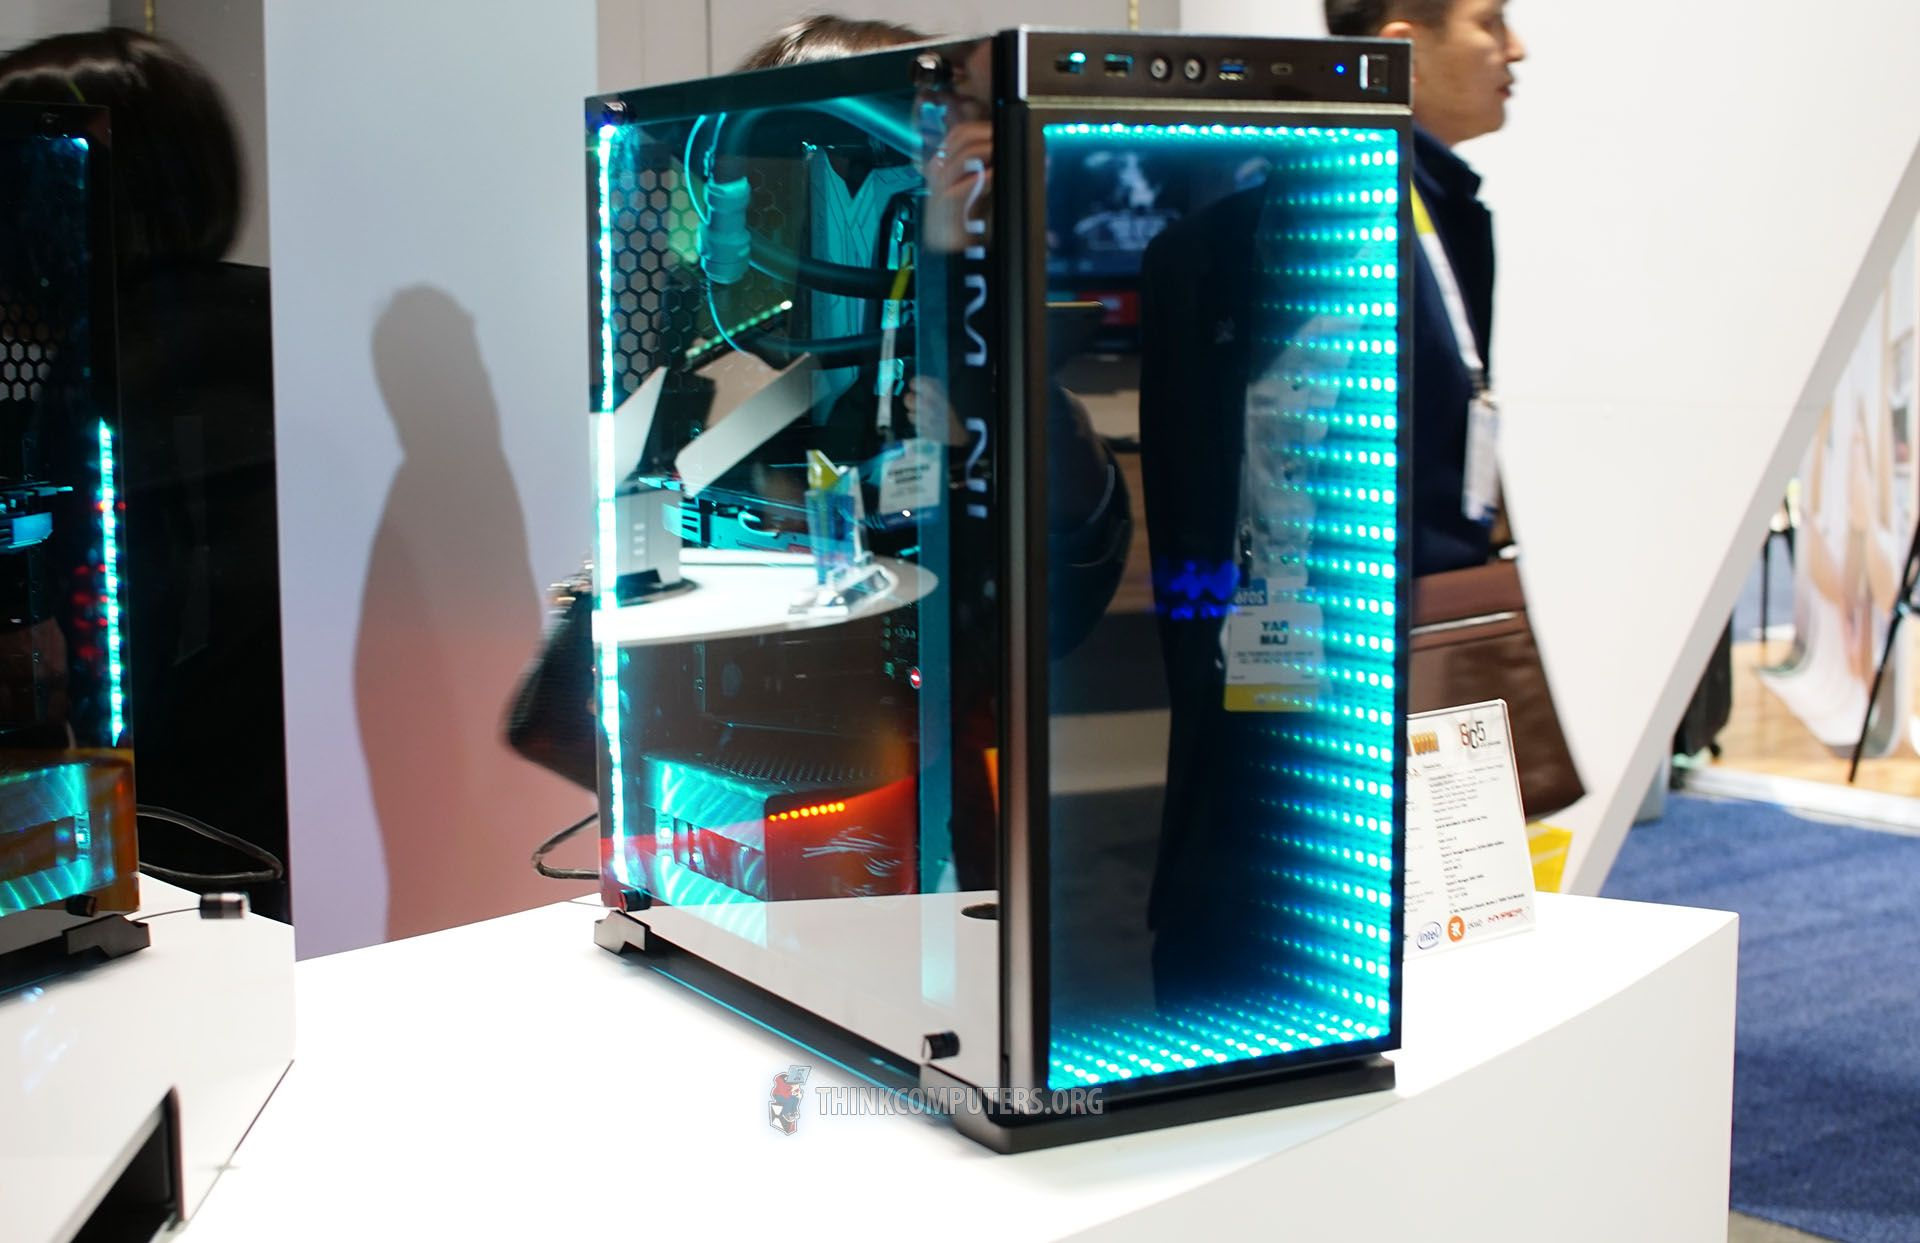 The World First Saw The In Win 805 At Computex This Past